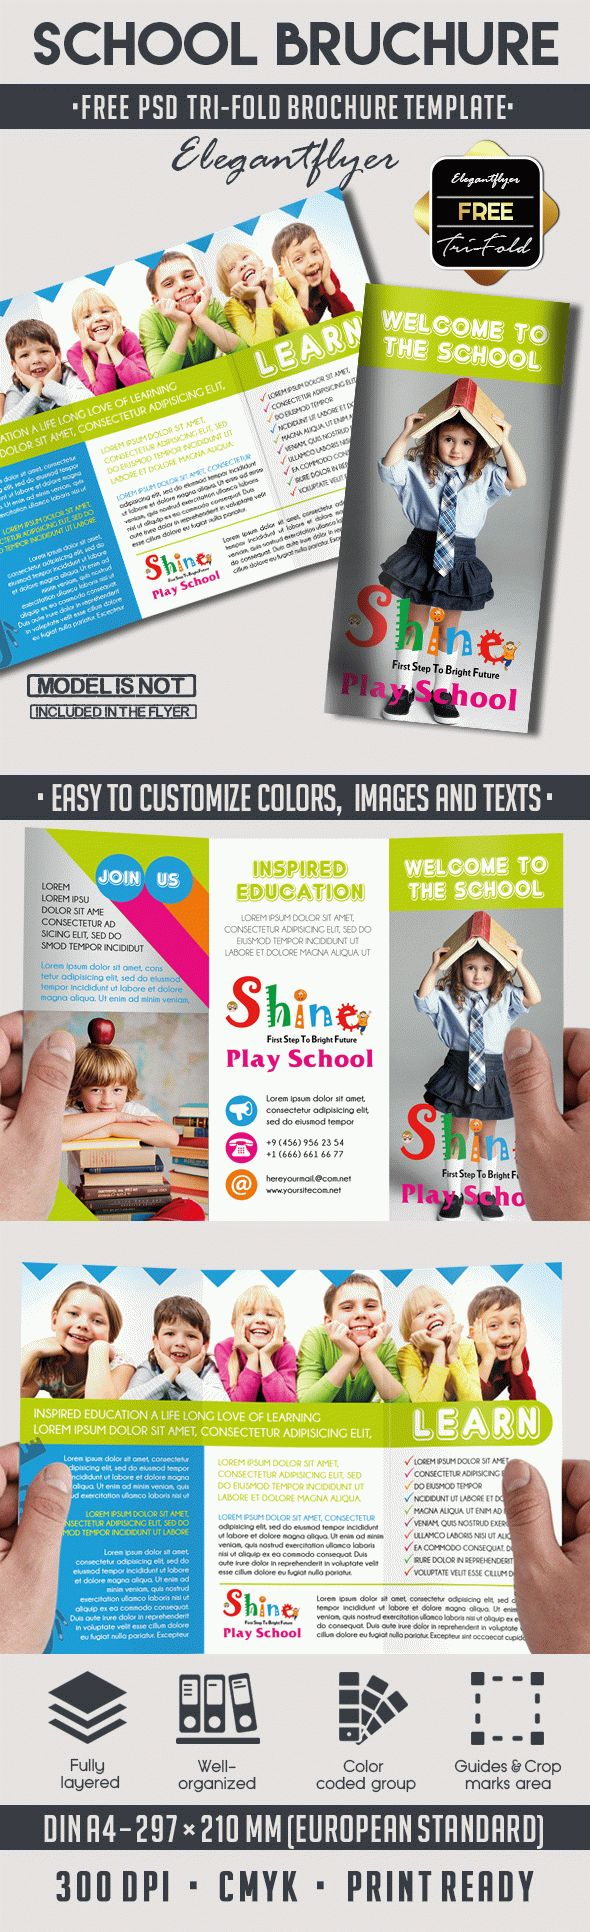 education brochure templates psd free download - school free psd tri fold psd brochure template by